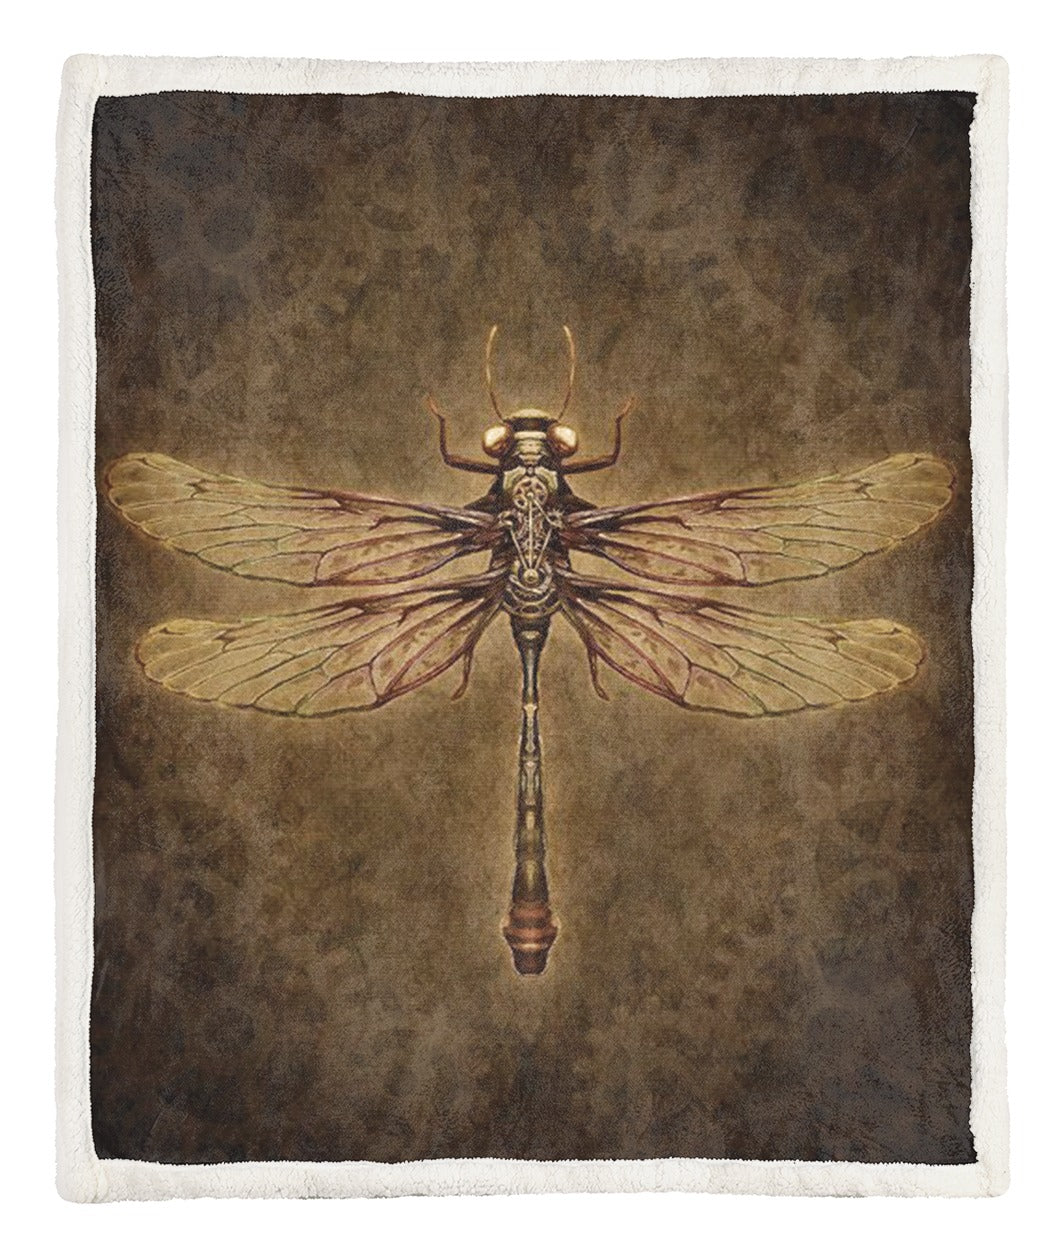 Dragonfly Throw Blanket CCC25102525